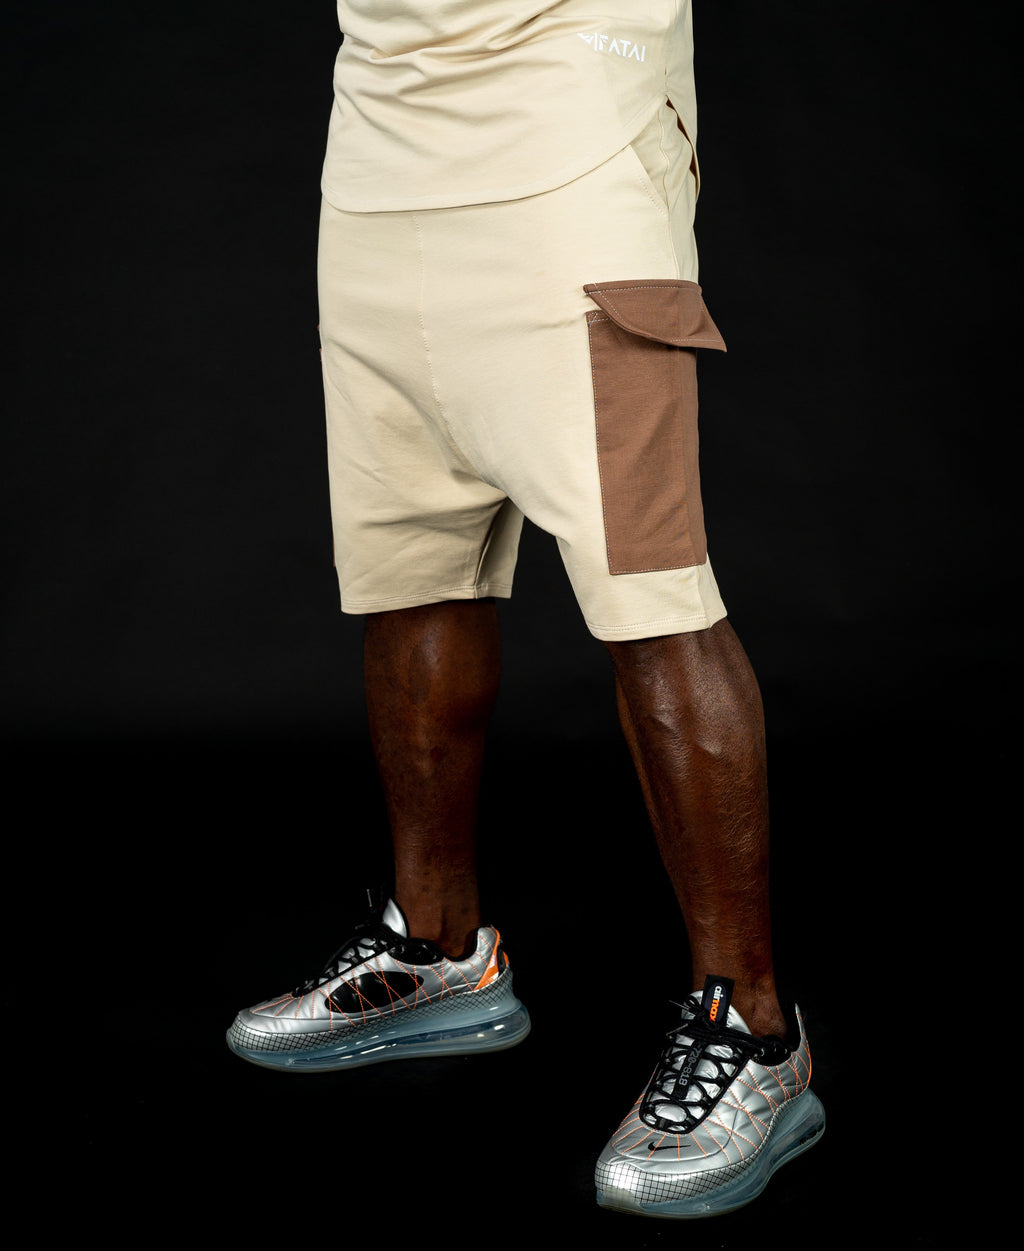 Short beige trousers with brown design - Fatai Style